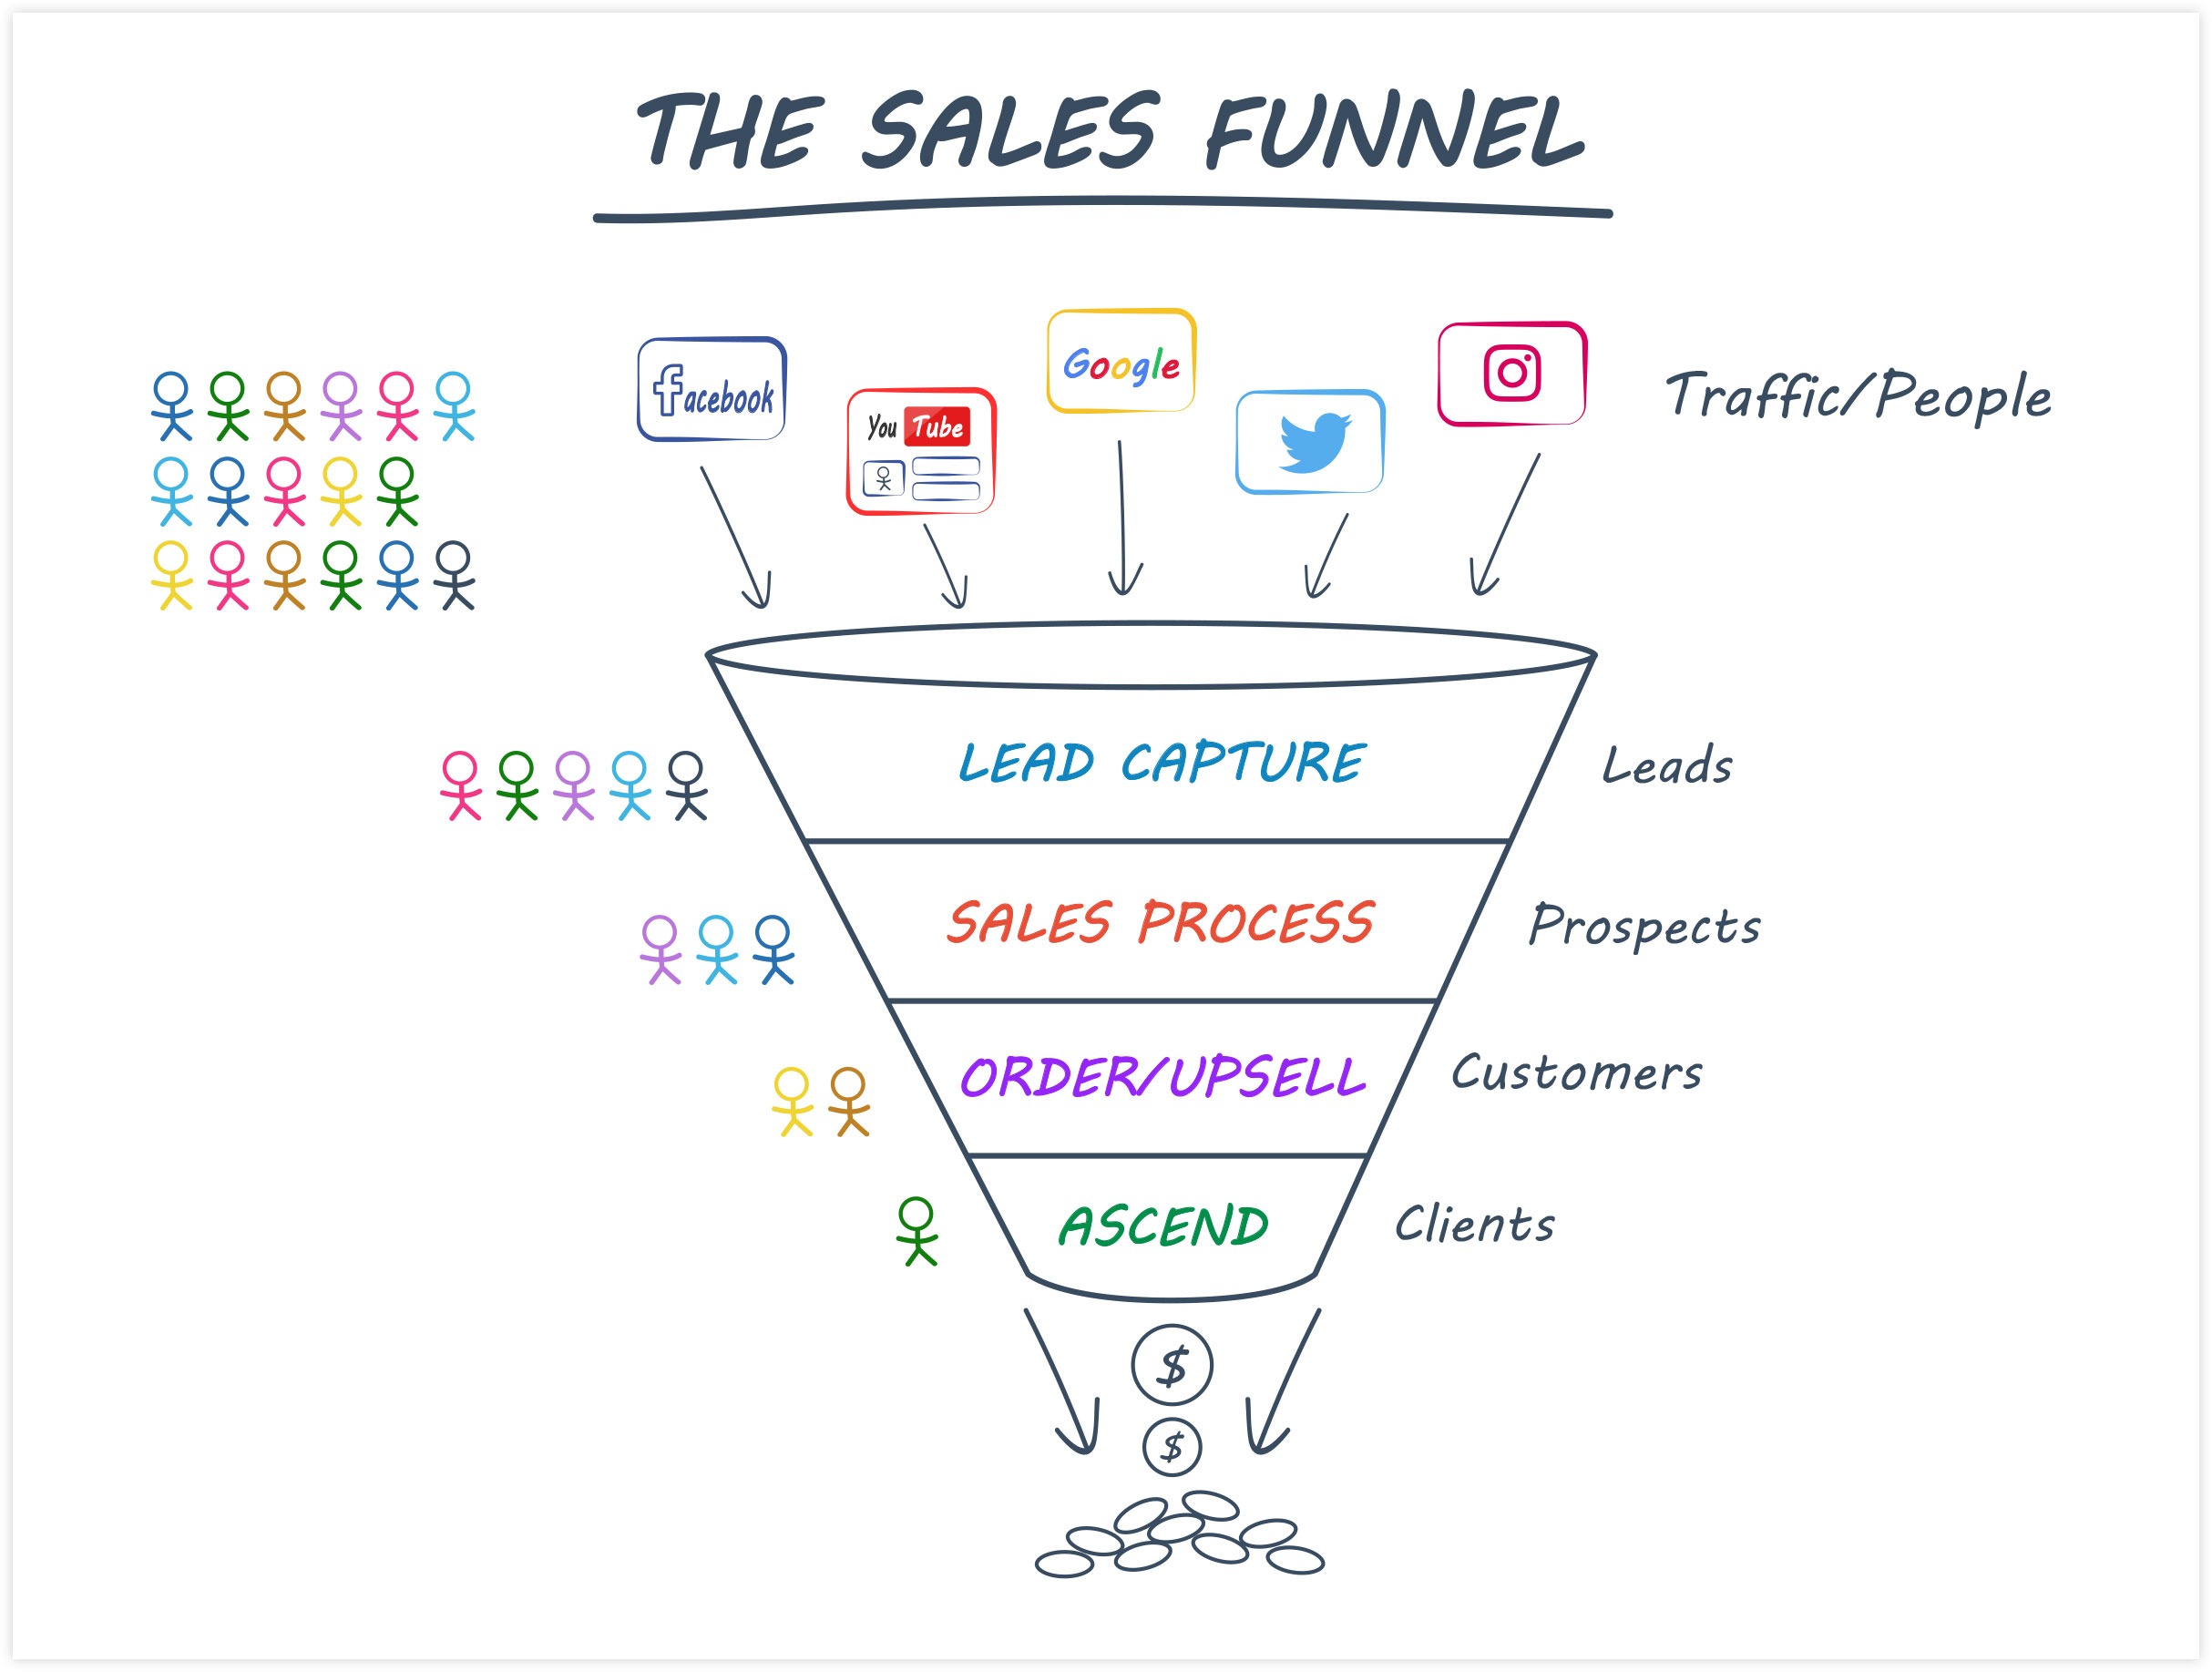 Sales Funnel Flow Example from ClickFunnels